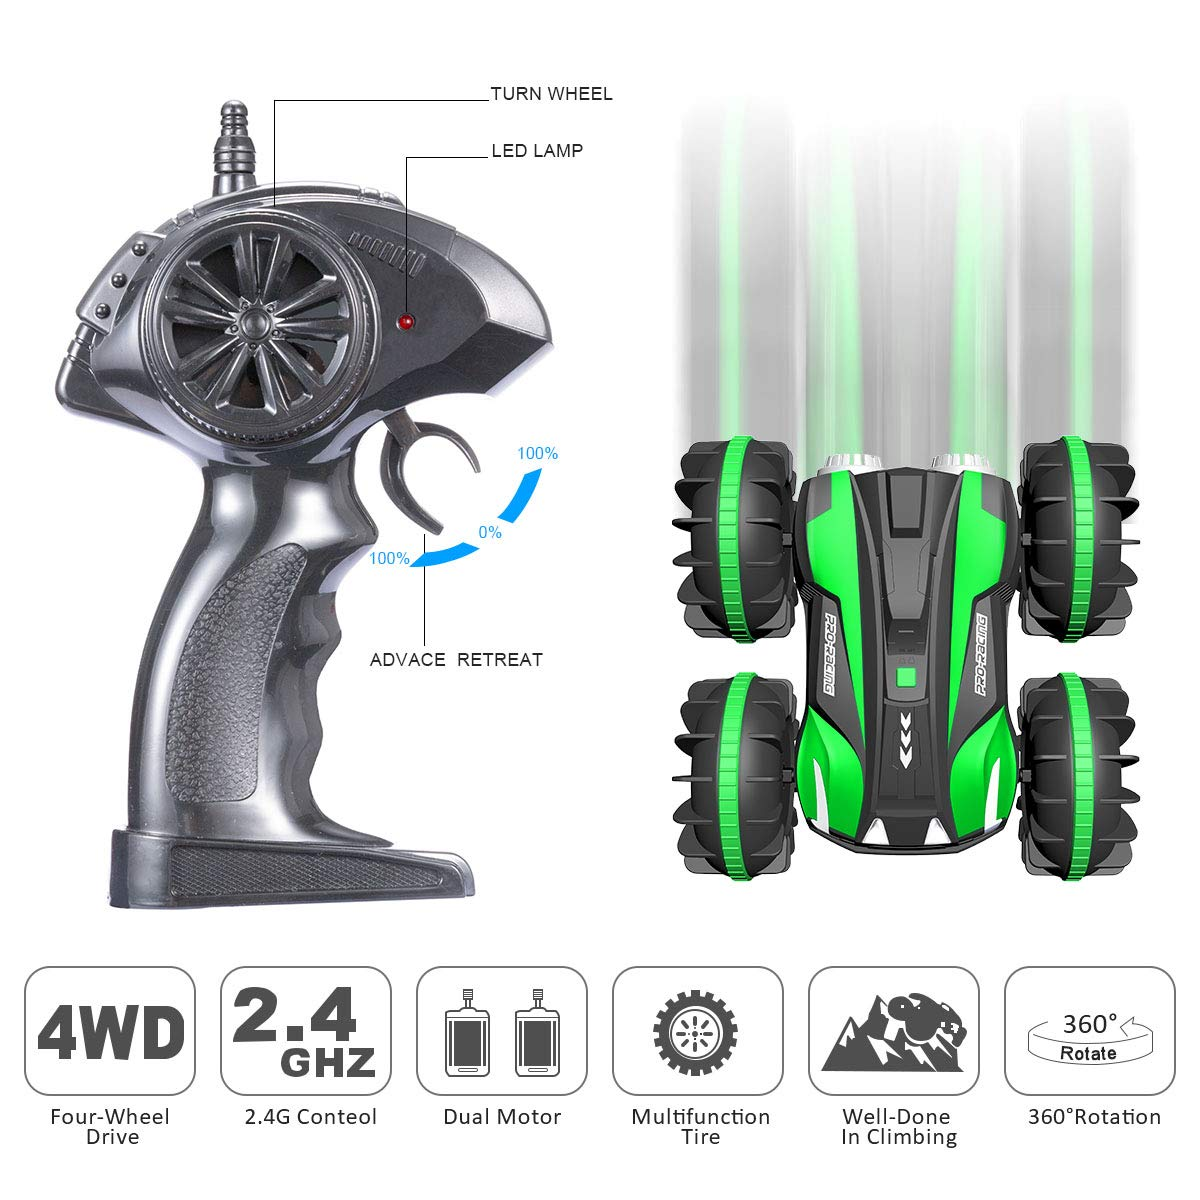 Remote Control Car Boat Truck 4WD 6CH 2.4Ghz Land Water 2 in 1 RC Toy Car Multifunction Waterproof Stunt 1:16 Remote Vehicle with Rotate 360 Electric Car Toy by FREE TO FLY by FREE TO FLY (Image #5)